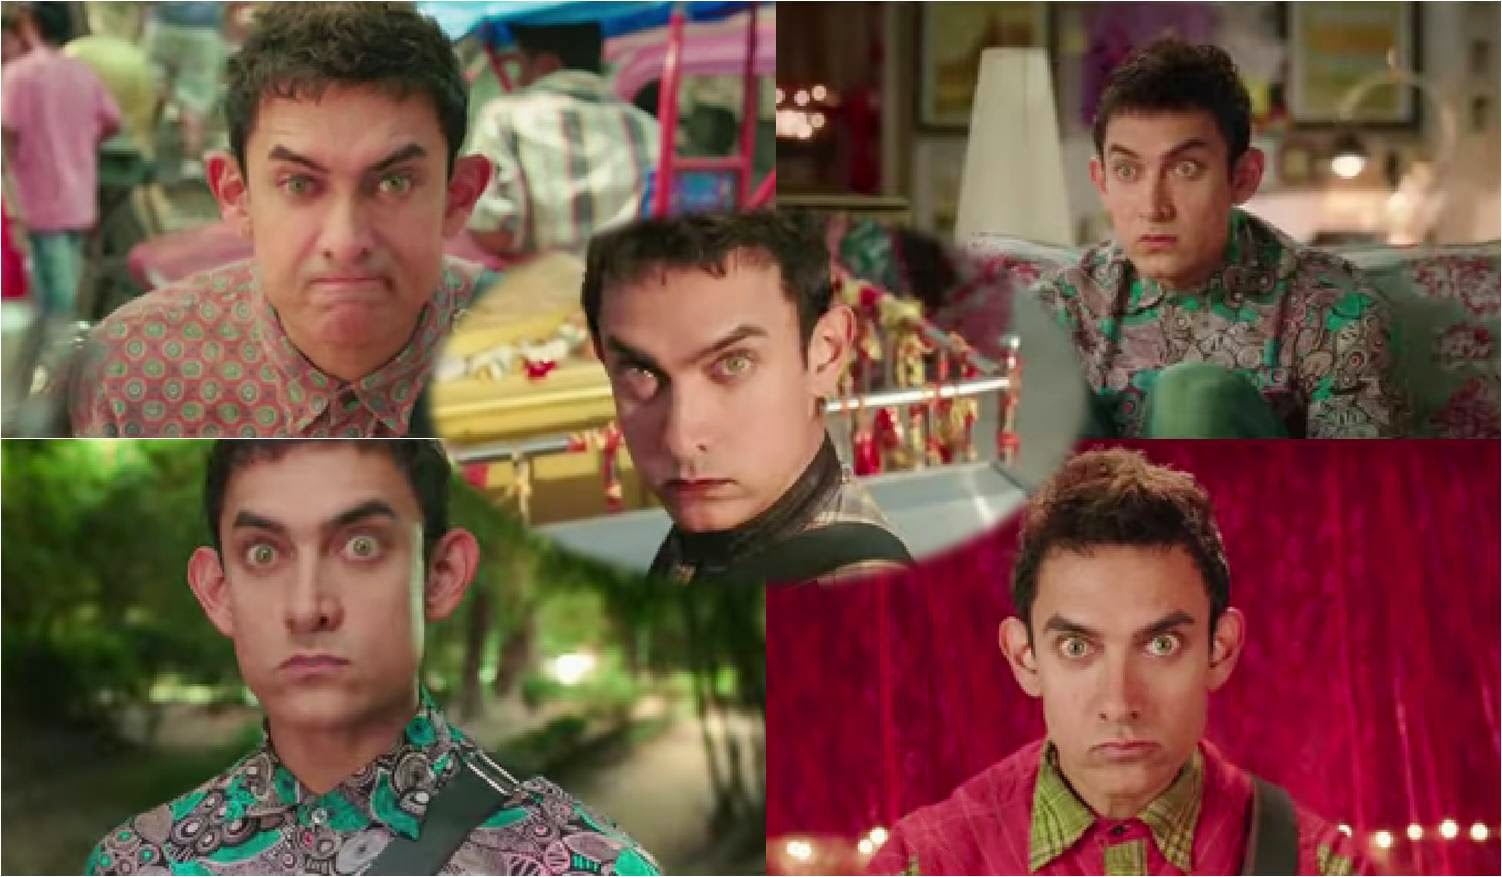 Aamir Khan in various expressions with wide eyes in Bollywood movie PK